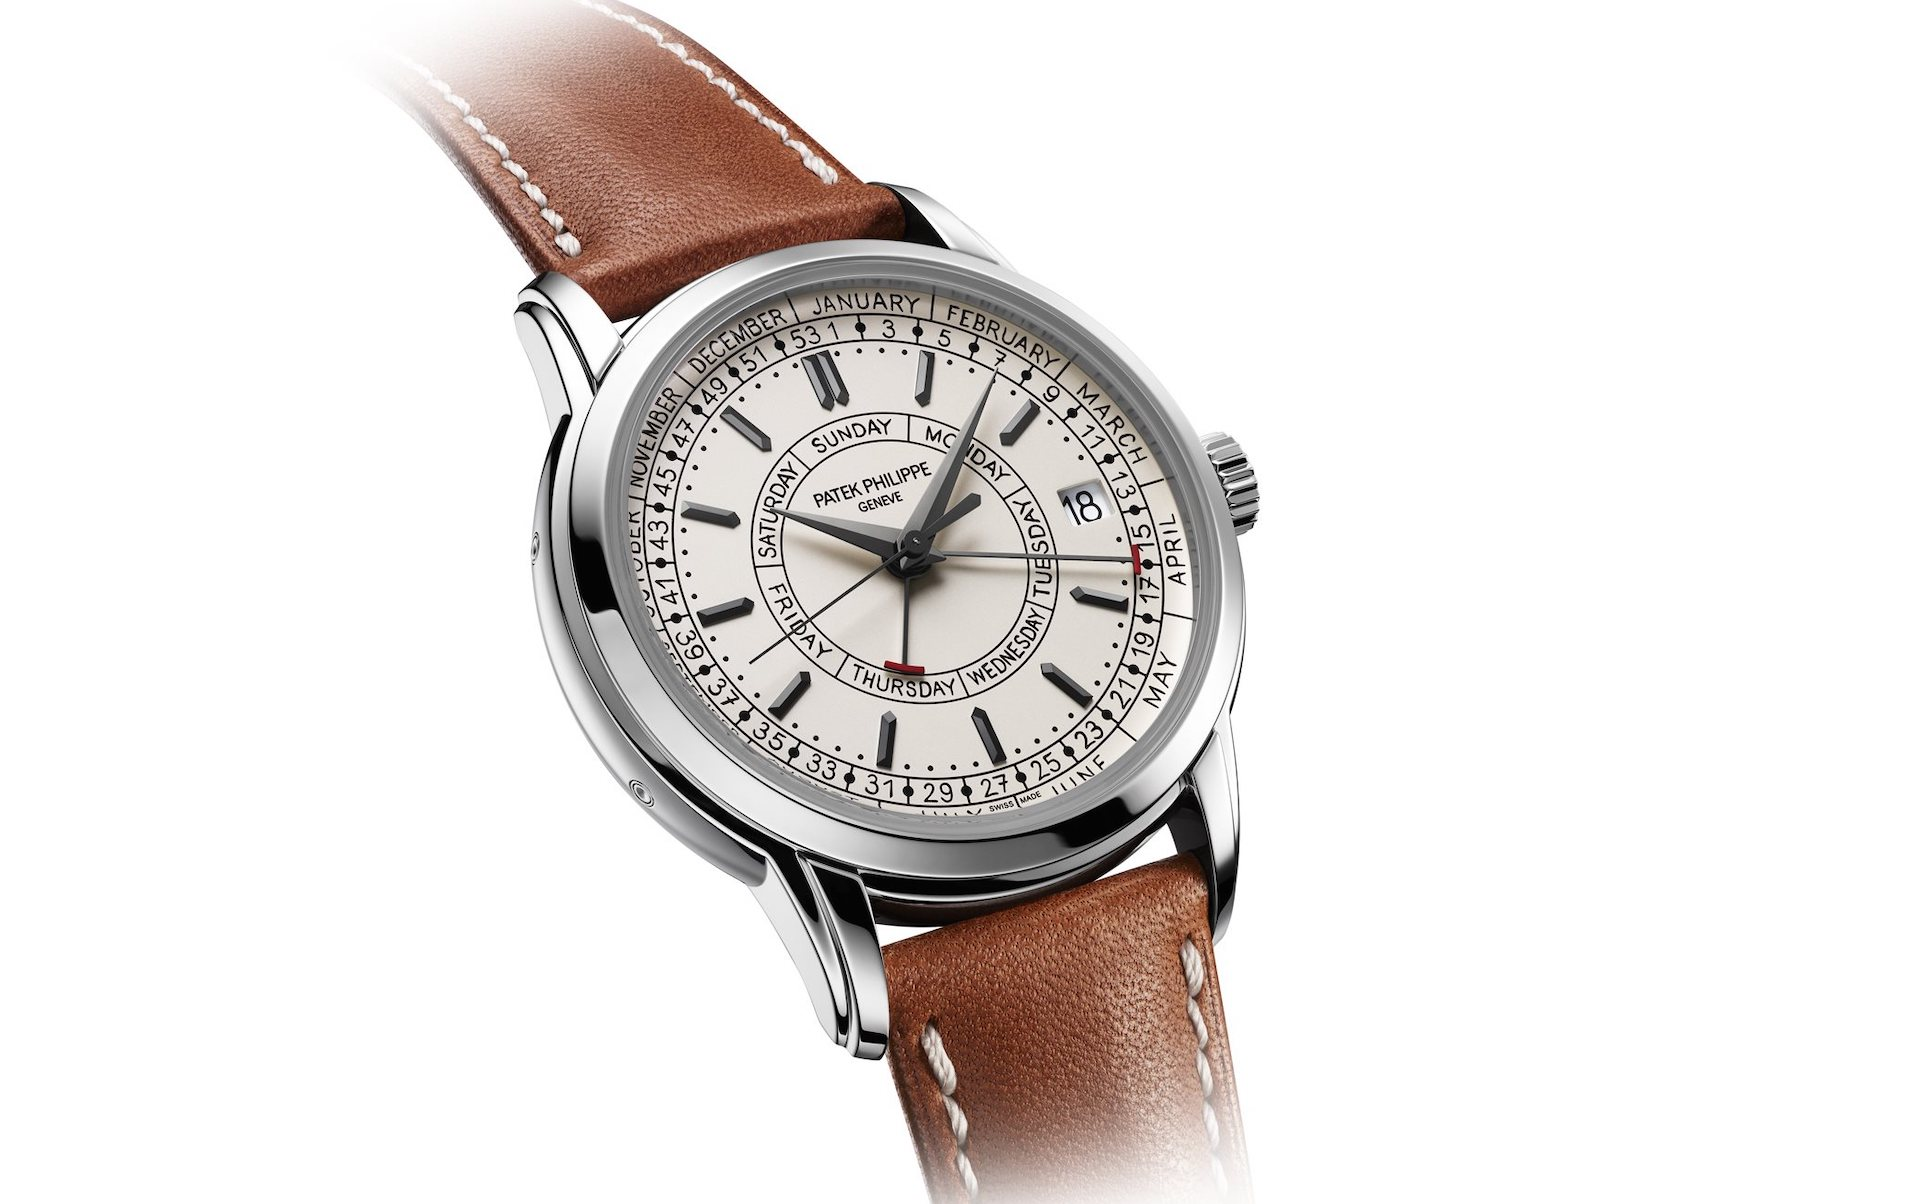 On Hands of Reviewing Best Patek Philippe 5212A Calatrava Weekly Calendar Watch